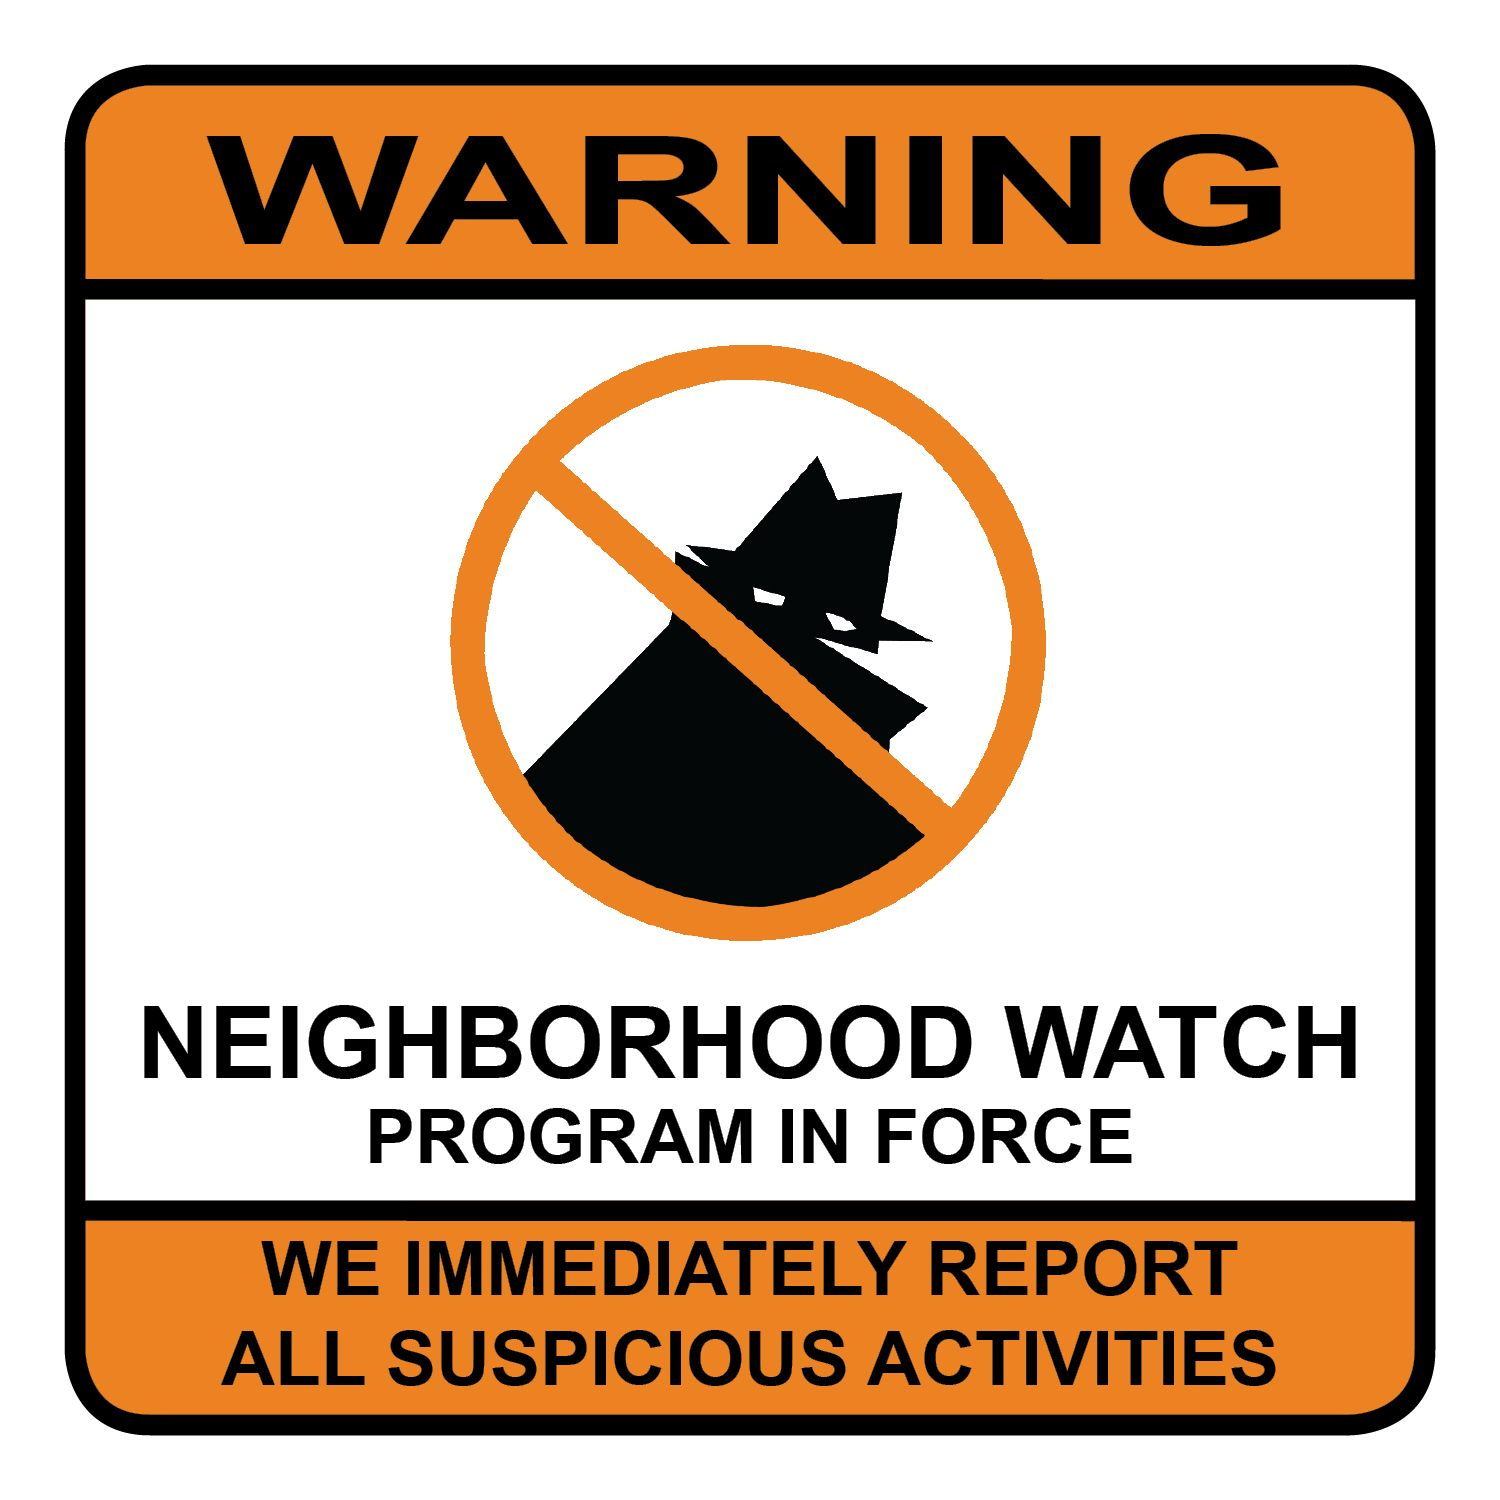 neighborhood watch clipart. announcement neighborhood watch quarterly general membership meeting clipart e